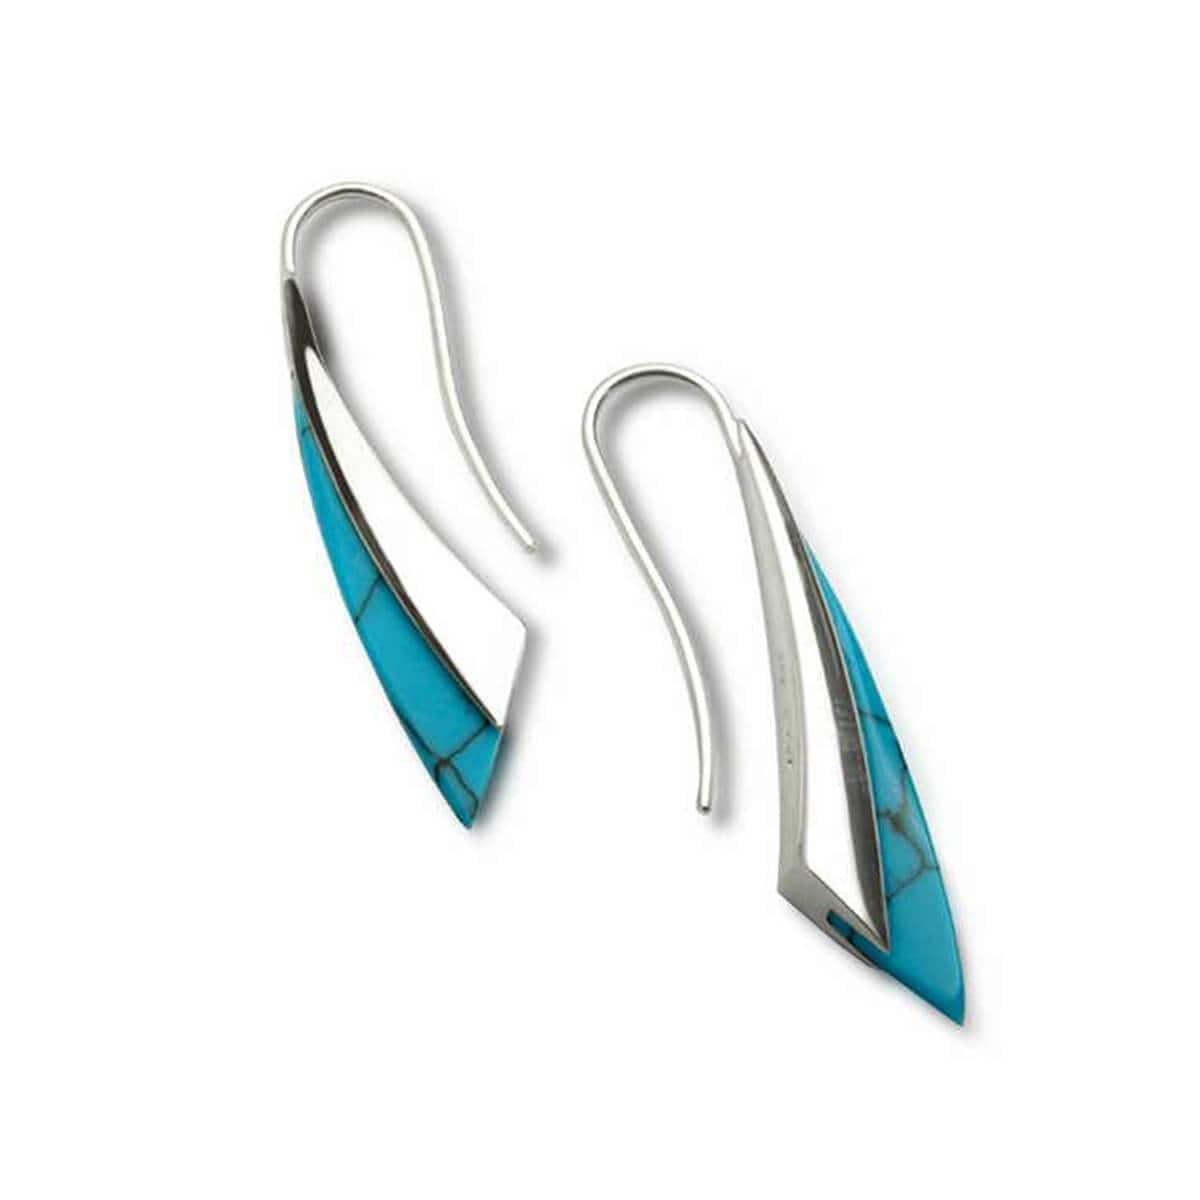 Silver & Turquoise Fluidity Earrings